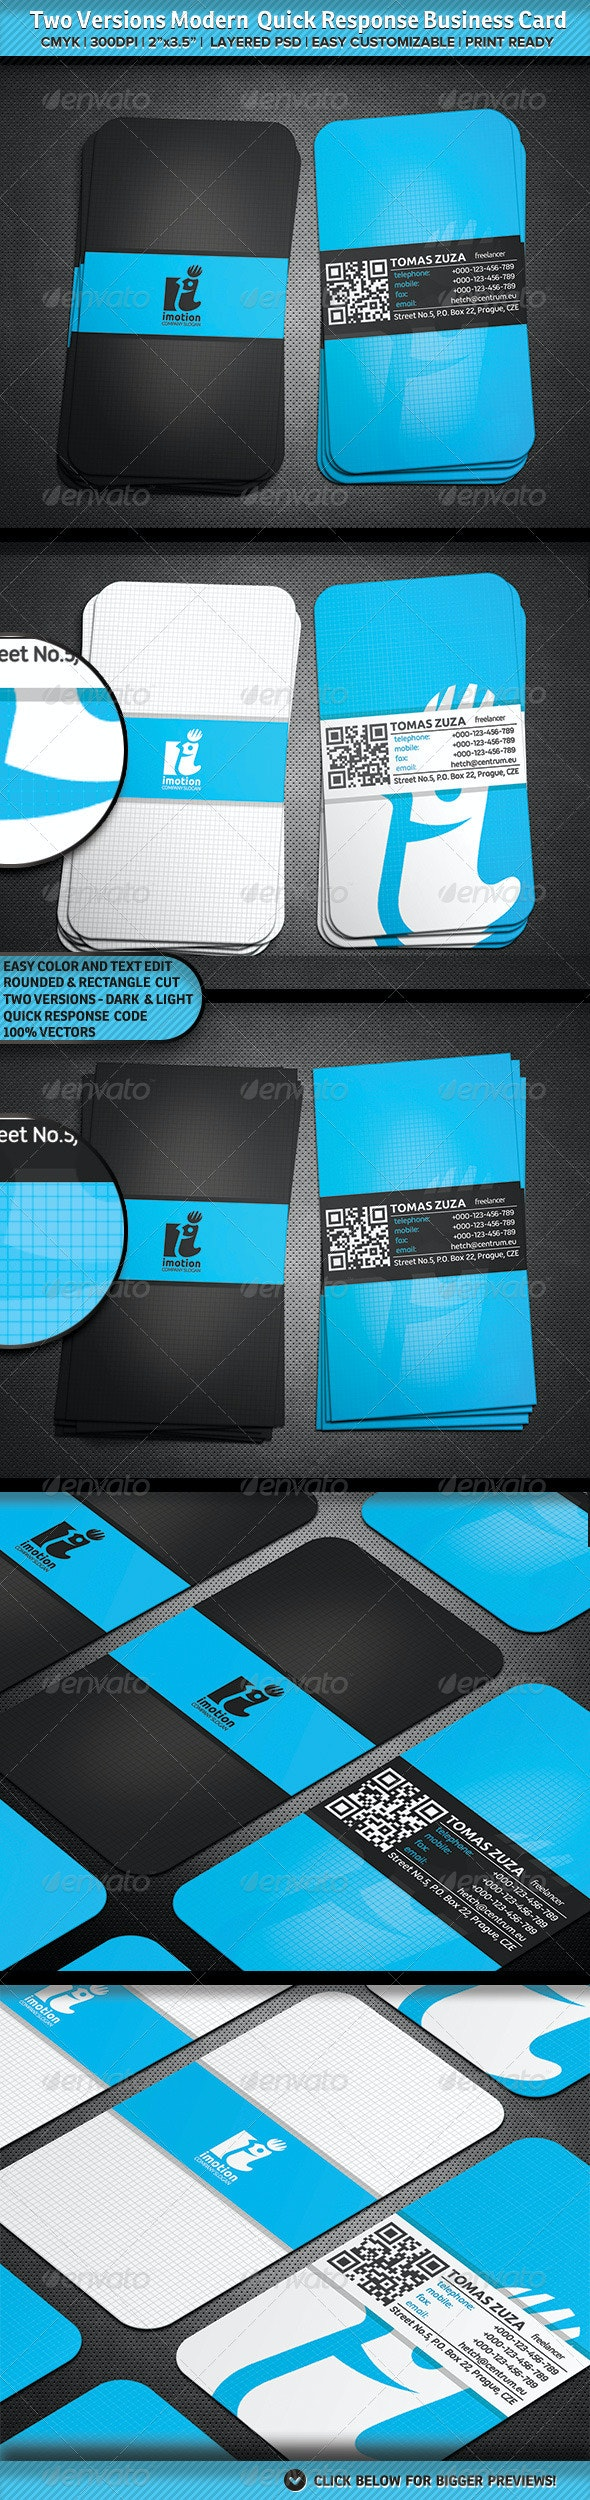 Two Versions Modern Quick Response Business Card - Corporate Business Cards